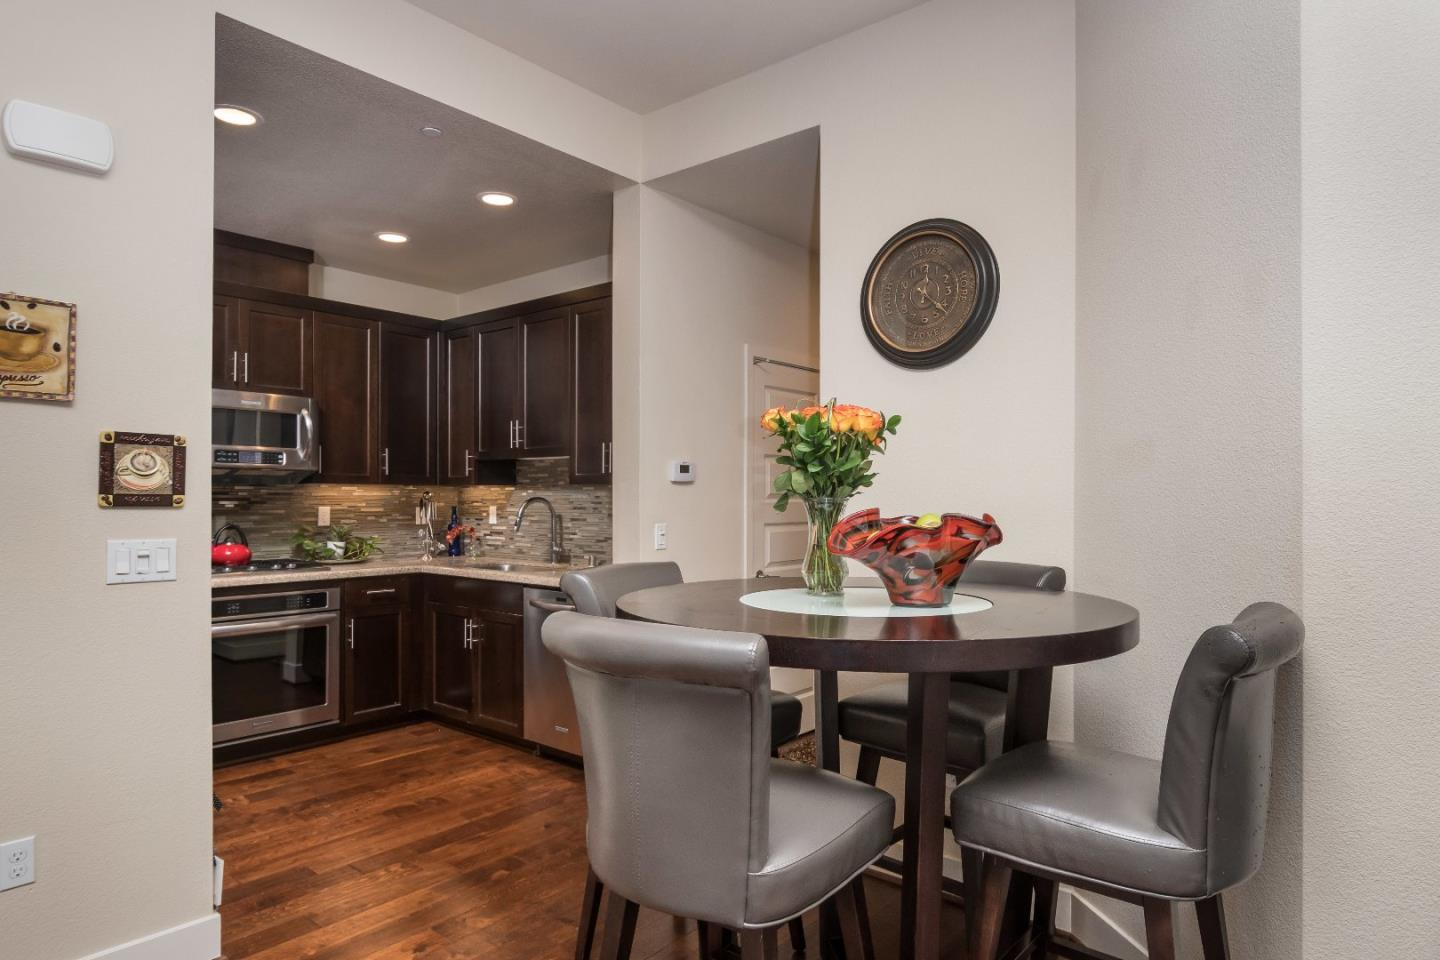 Additional photo for property listing at 2832 Alvarado Ave  SAN MATEO, CALIFORNIA 94403